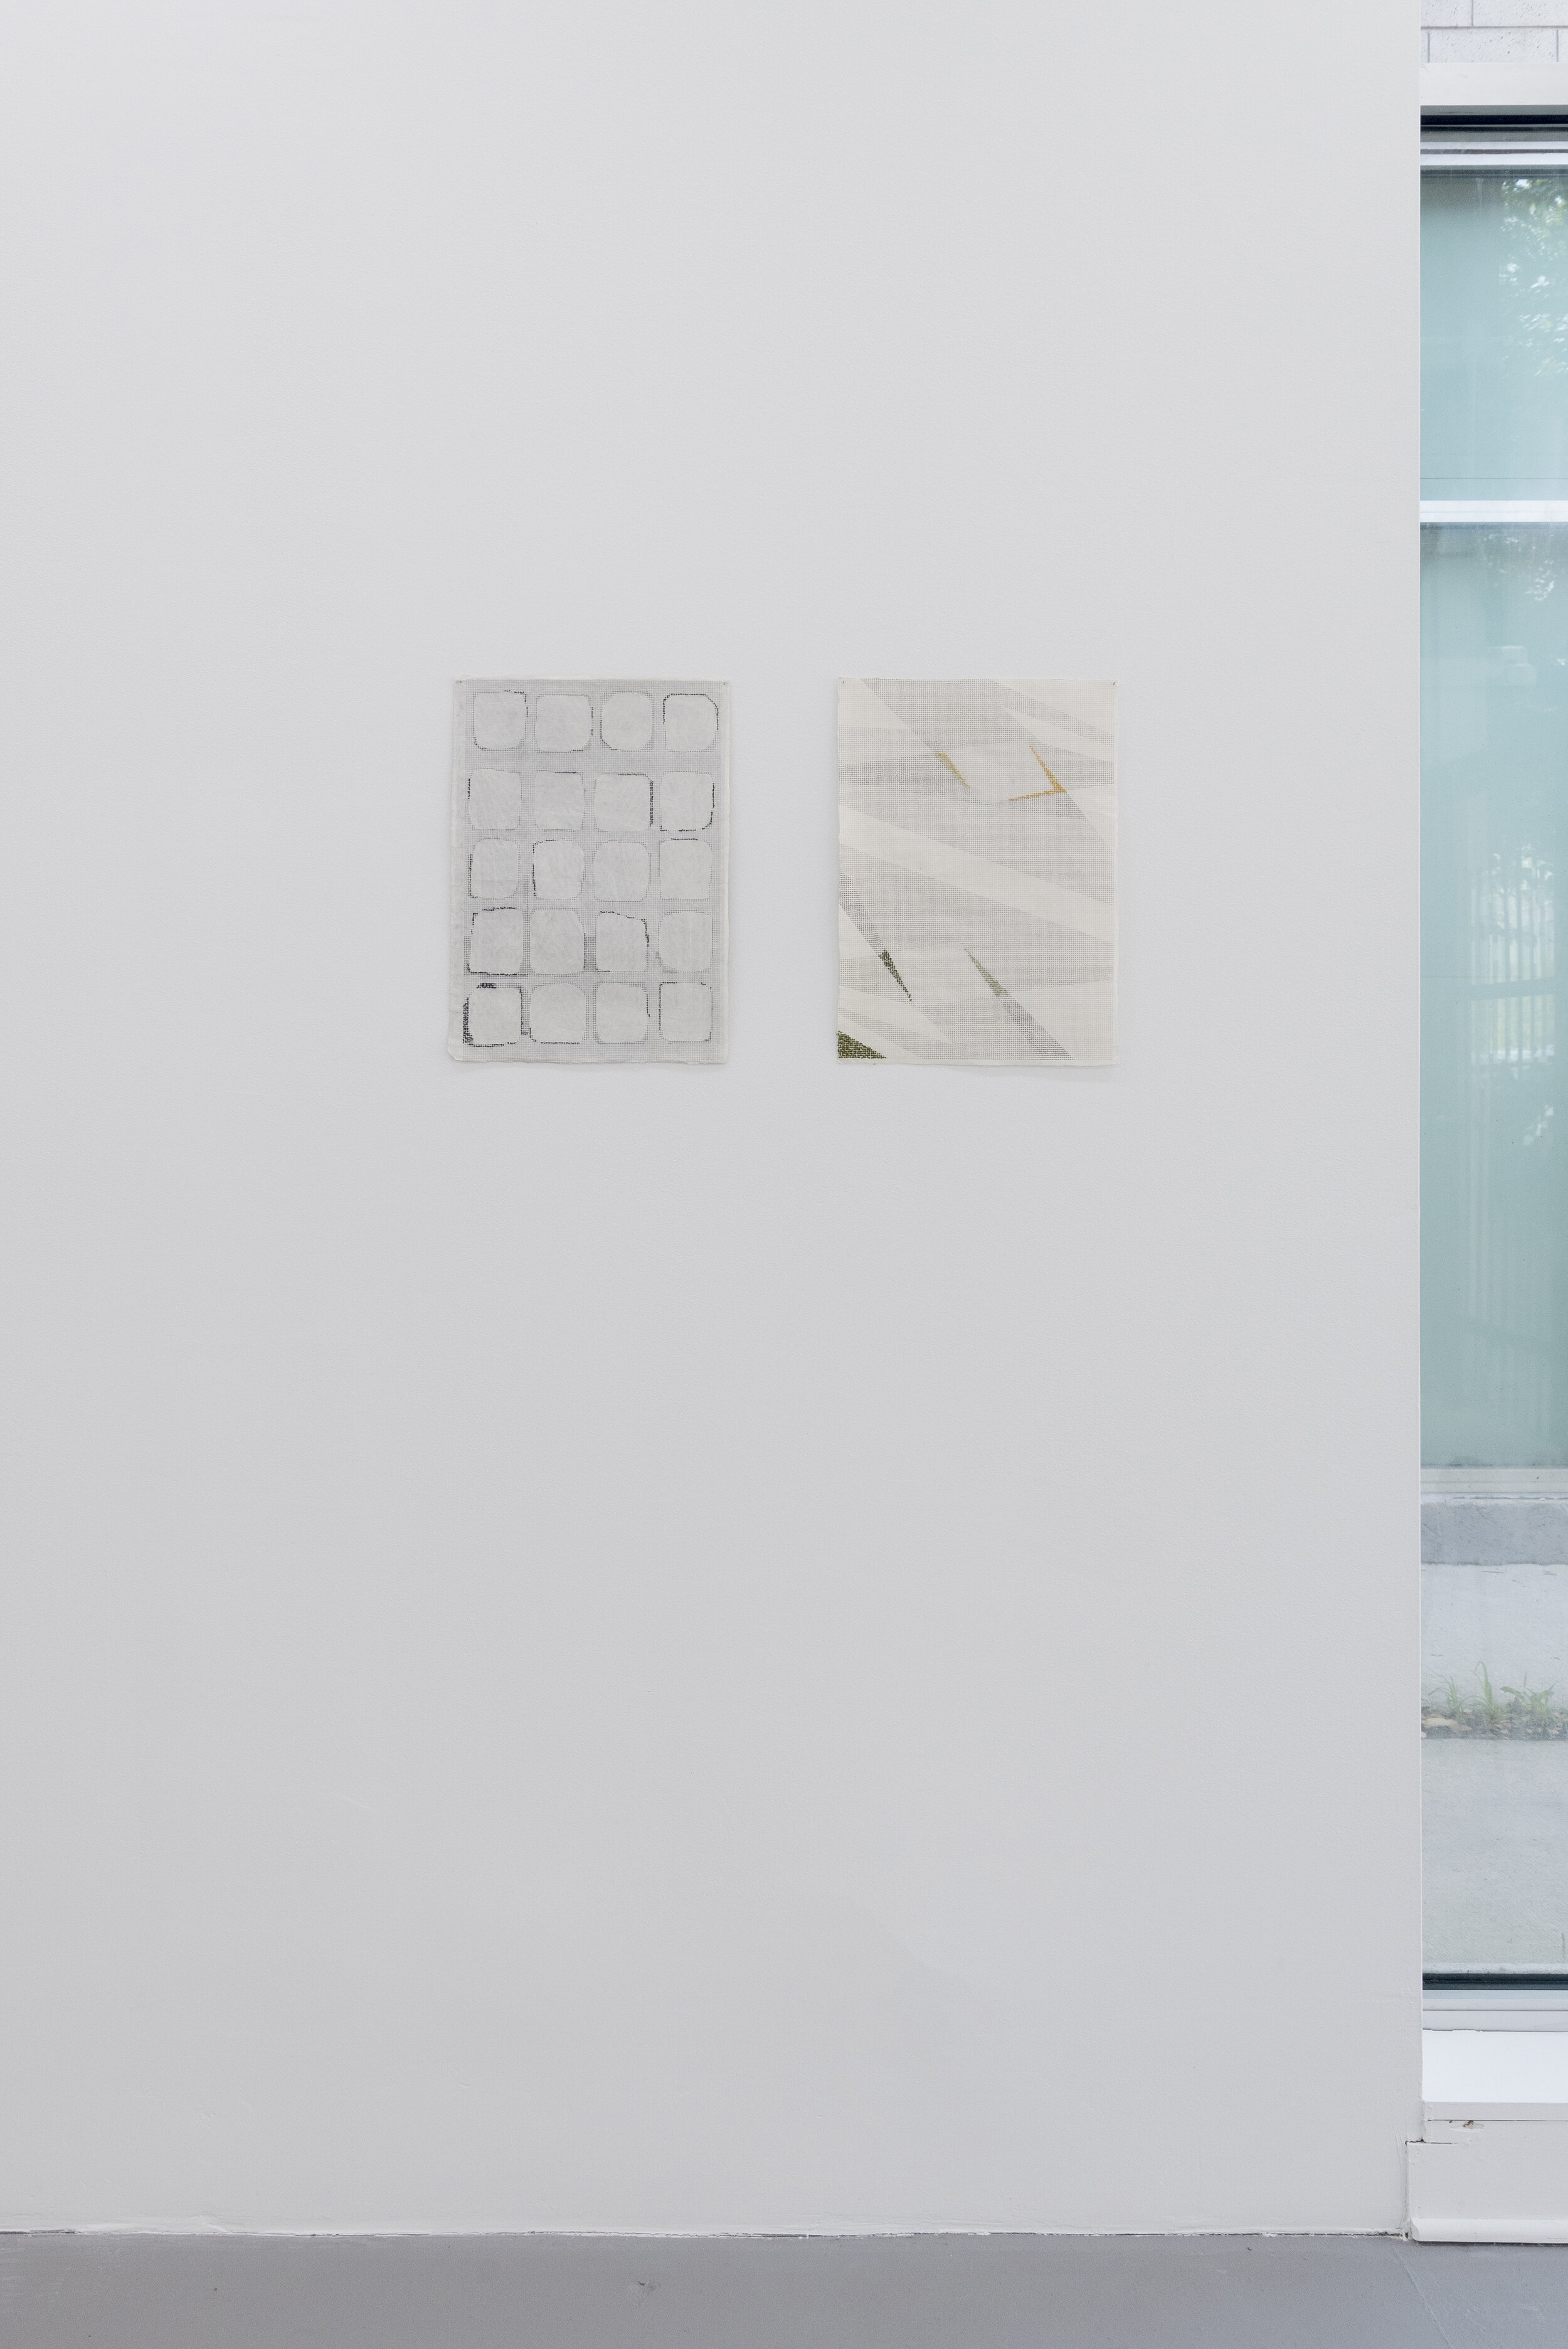 Left: Azadeh Gholizadeh,  Labyrinth , 2017 embroidery on archival inkjet print on rice paper  Right: Azadeh Gholizadeh,  Knot , 2017 embroidery on archival inkjet print on rice paper